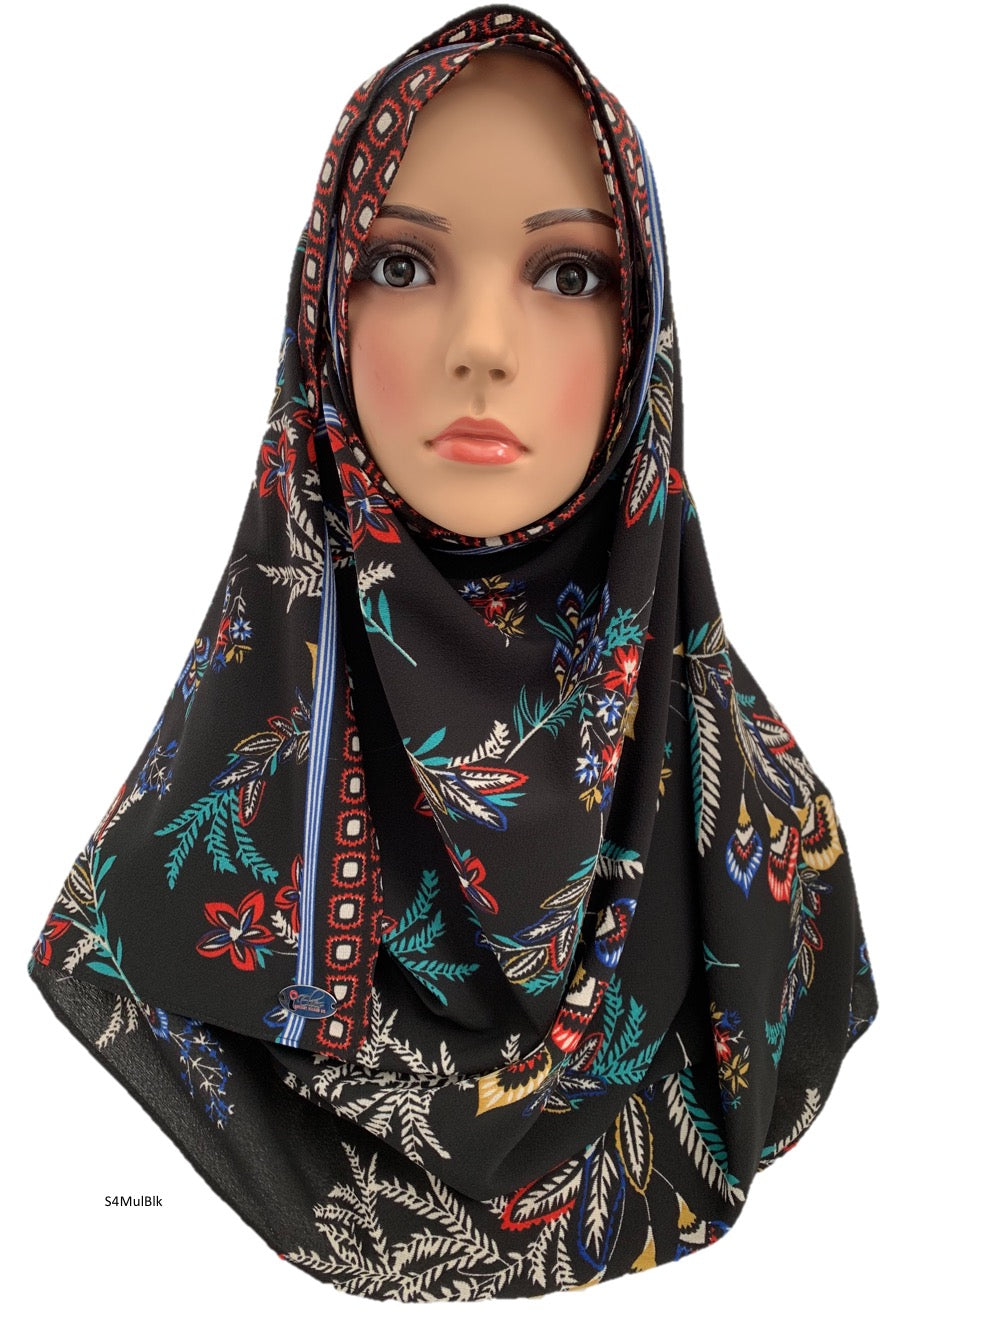 (S4MulBlk) Black multi-coloured printed full-instant hijab